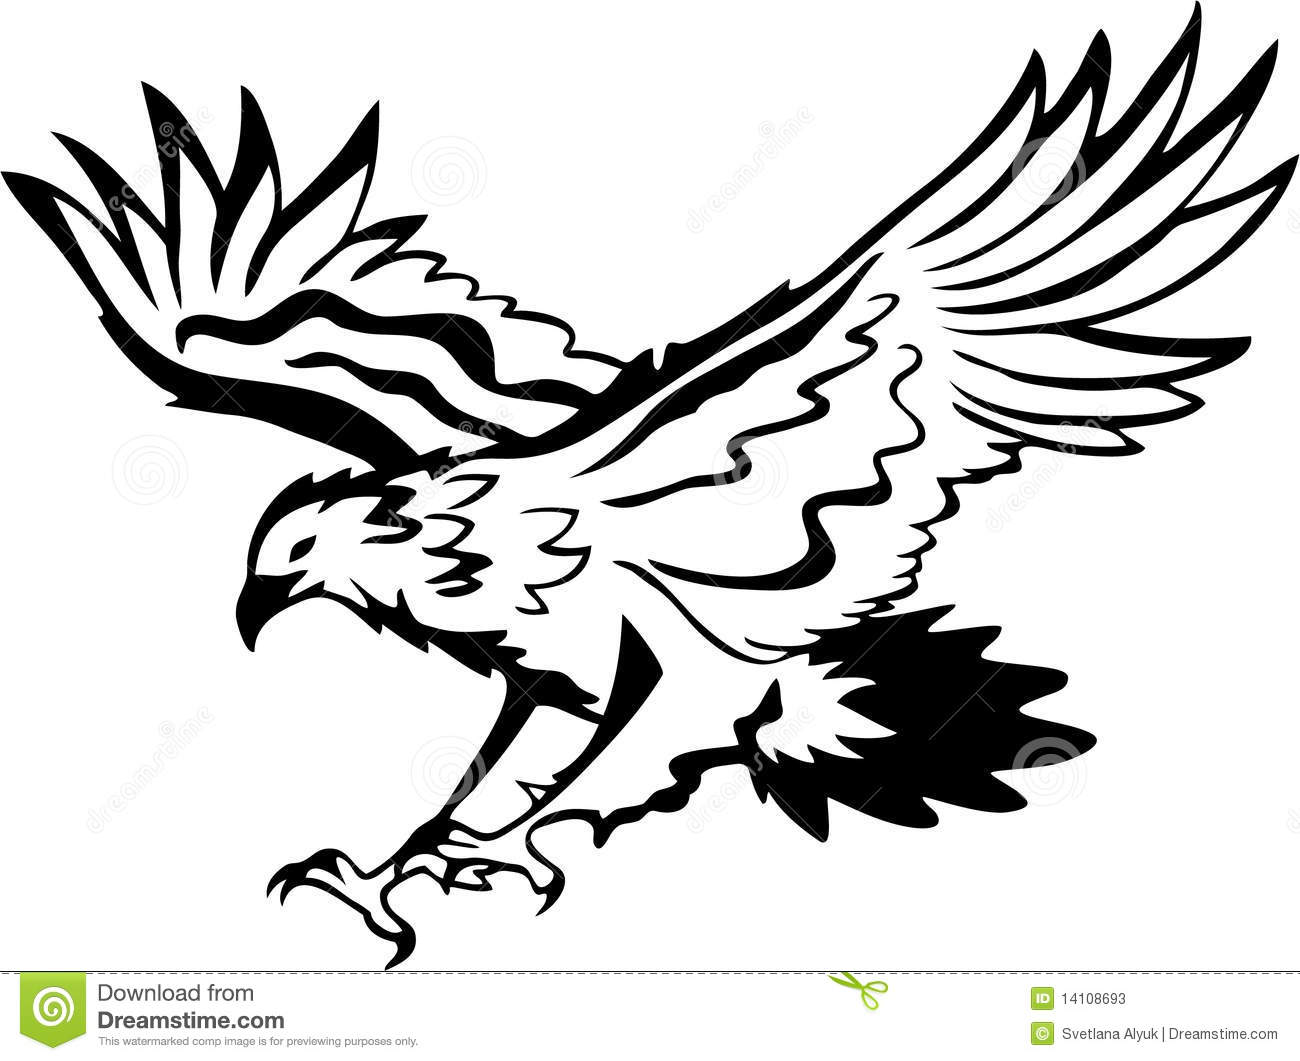 Free eagle download clip. Eagles clipart black and white